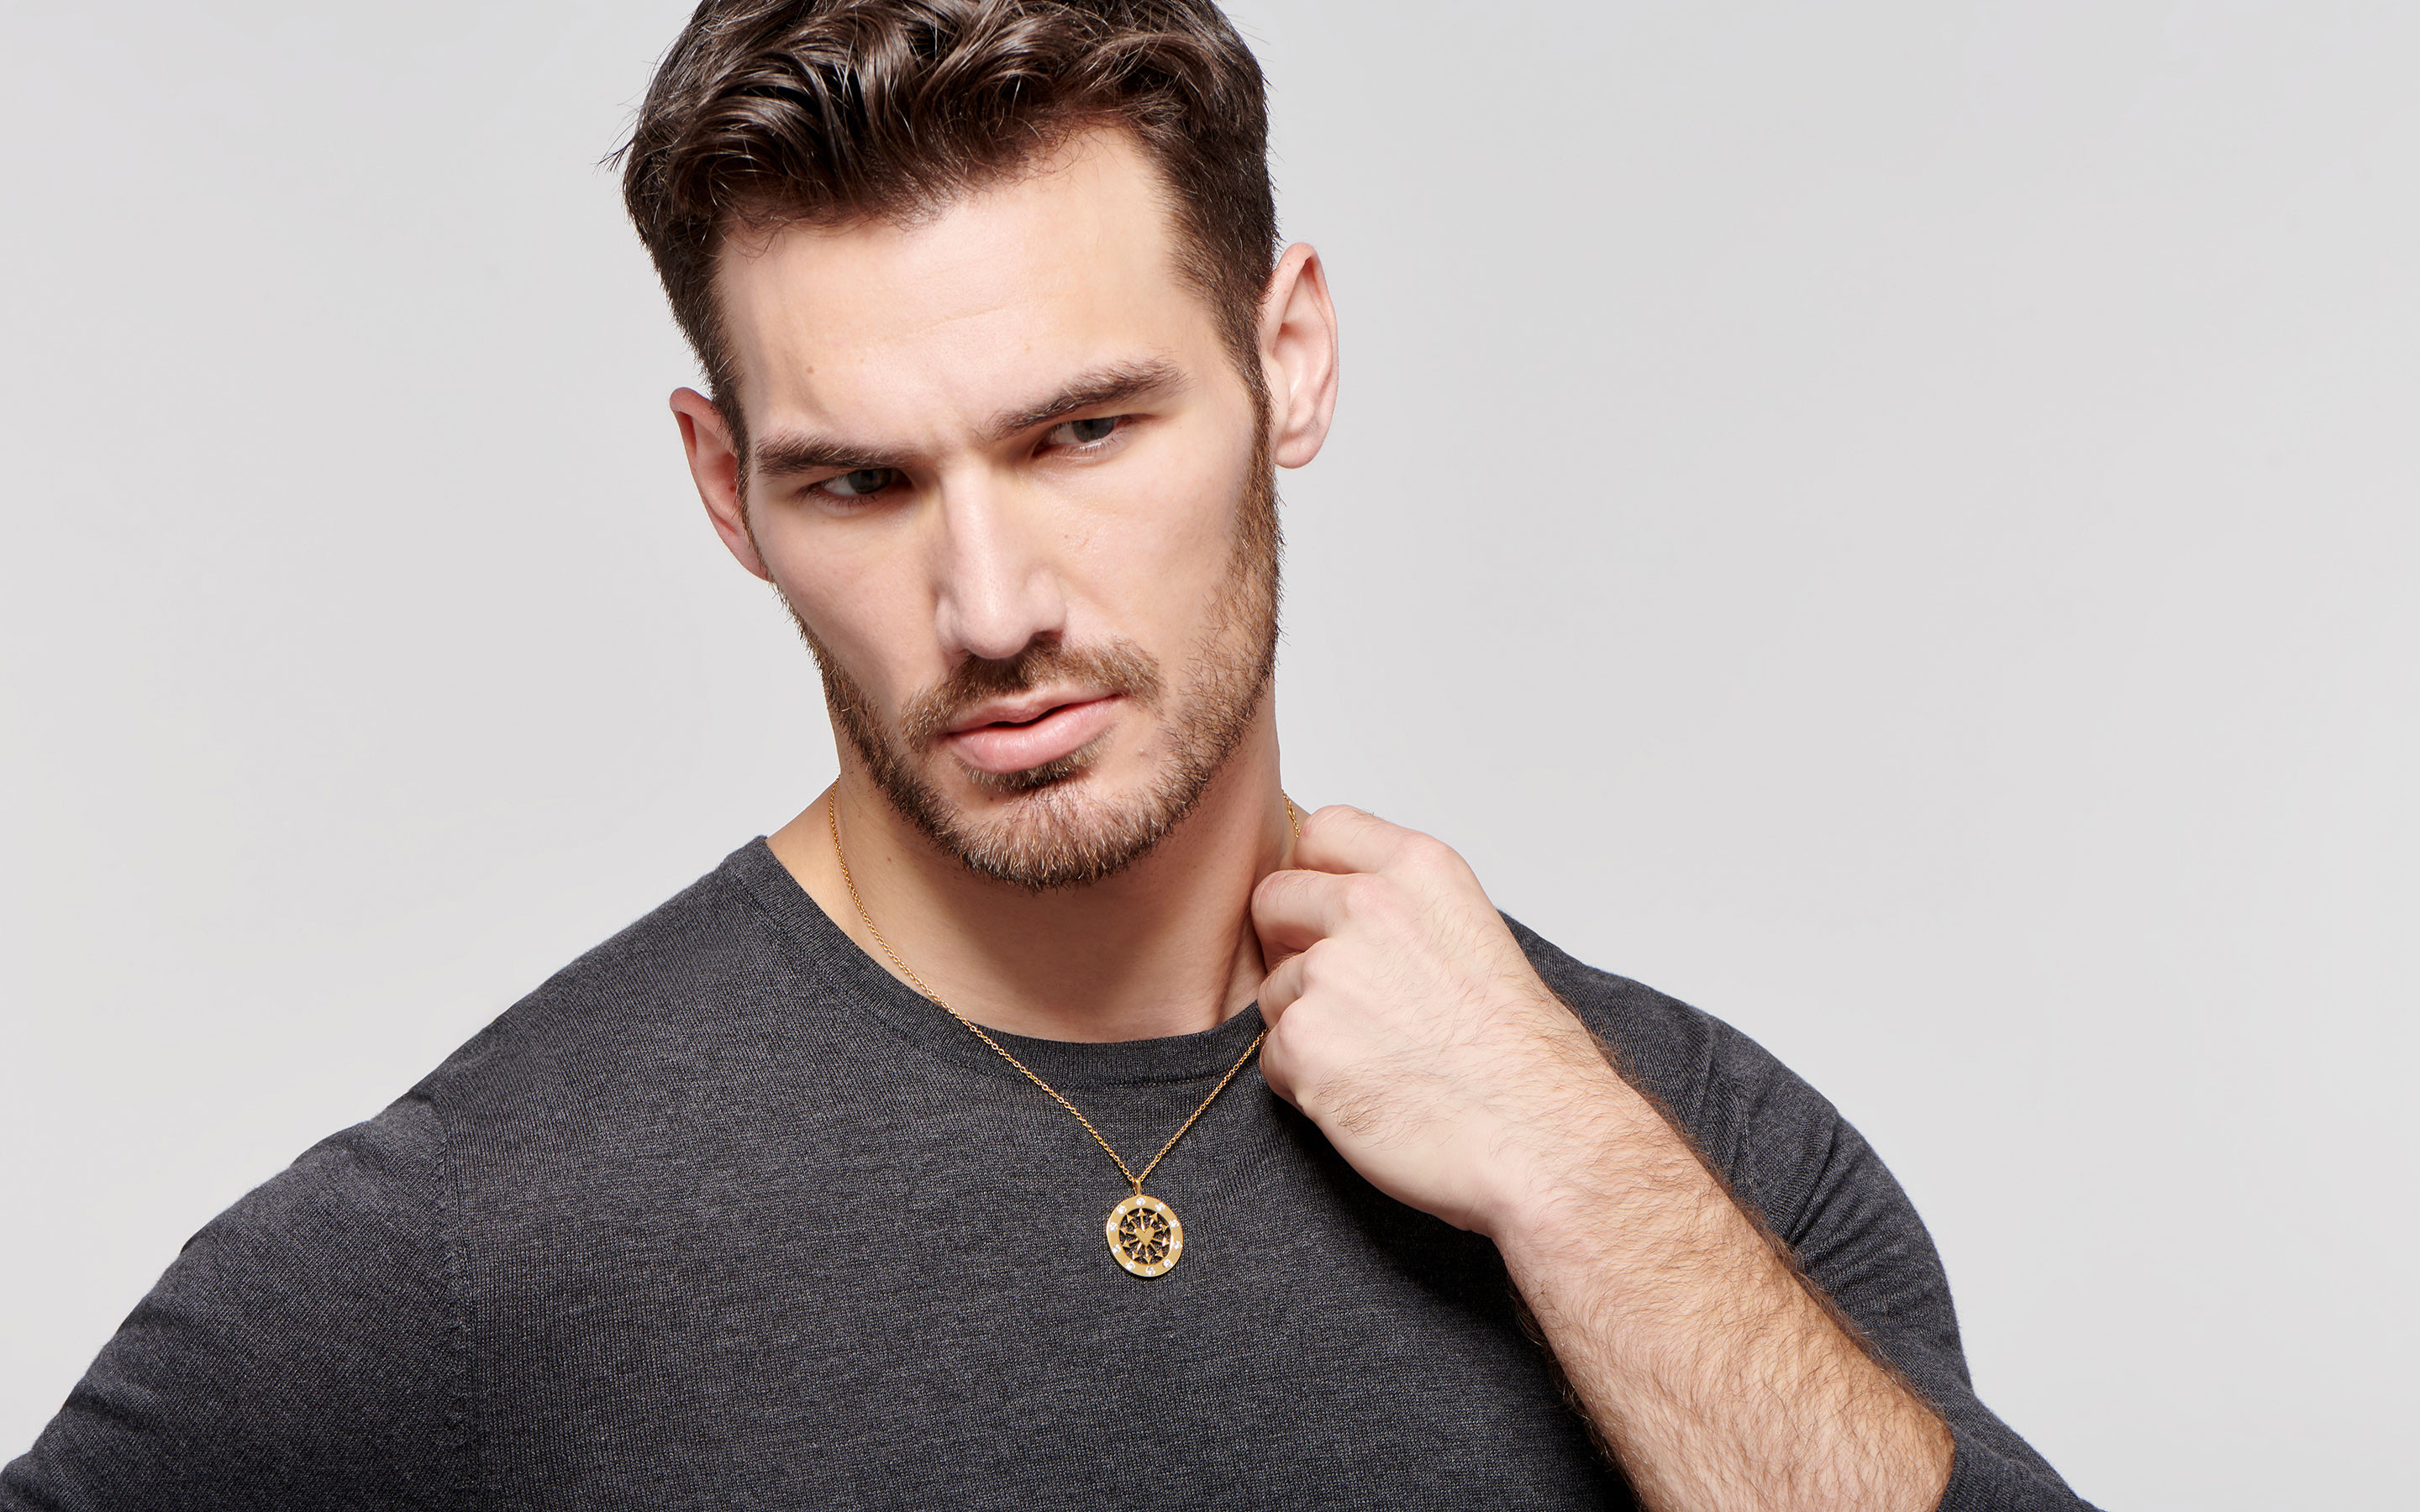 22 karat gold necklace with heart and arrows medallion in polished finish on bold male model